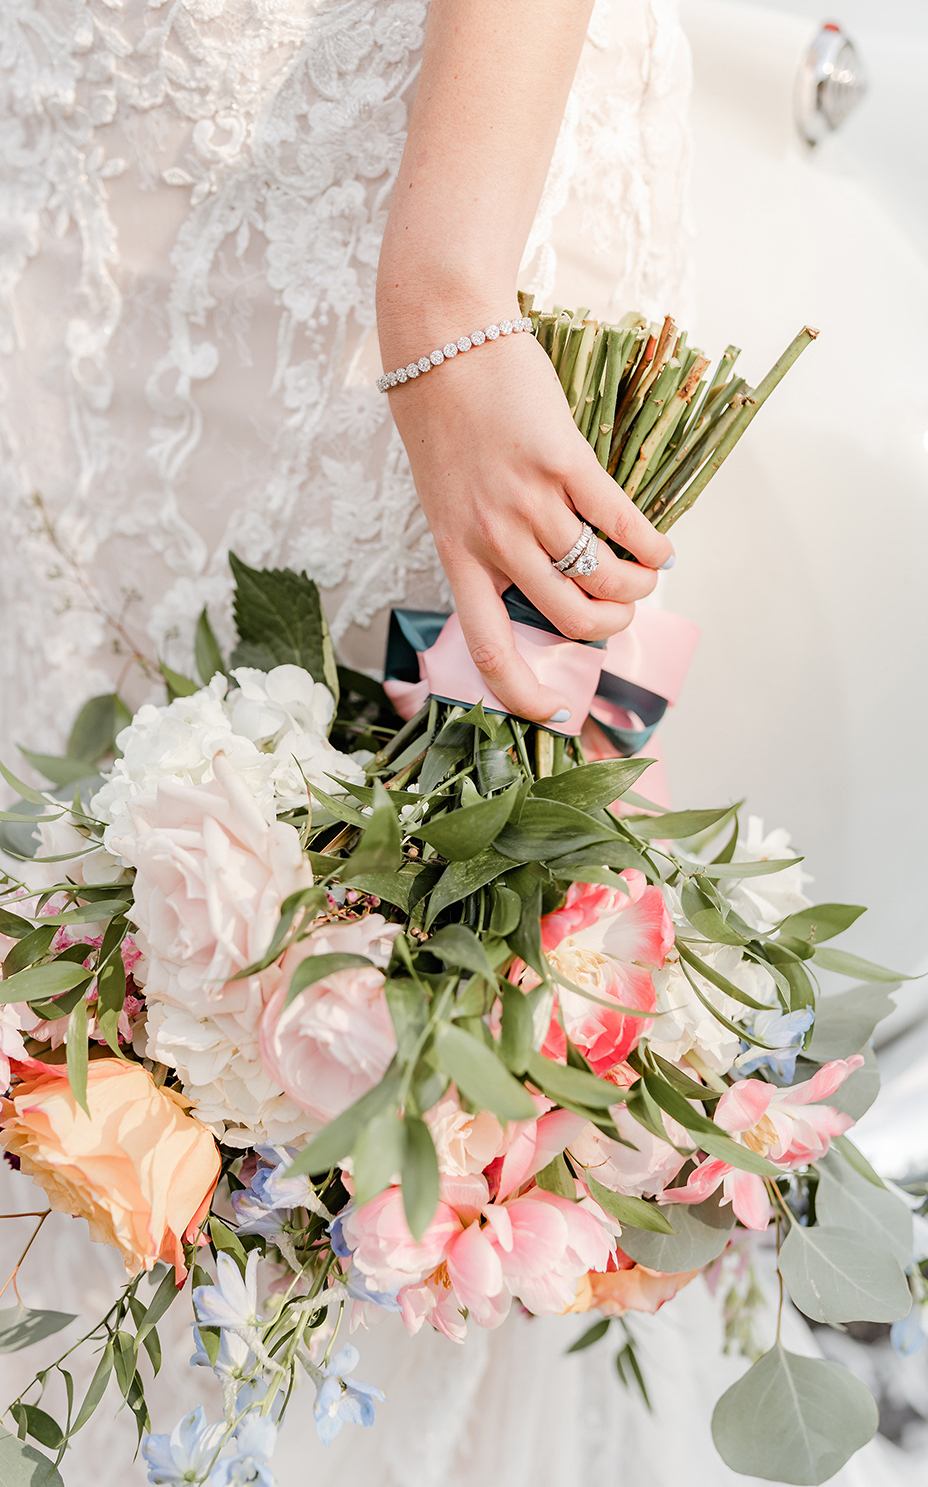 A pastel colored wedding bouquet provided by Dream Bouquet held by a hand wearing a diamond ring, stacked wedding band and a diamond tennis bracelet at a wedding styled shoot at The Carriage House wedding venue.